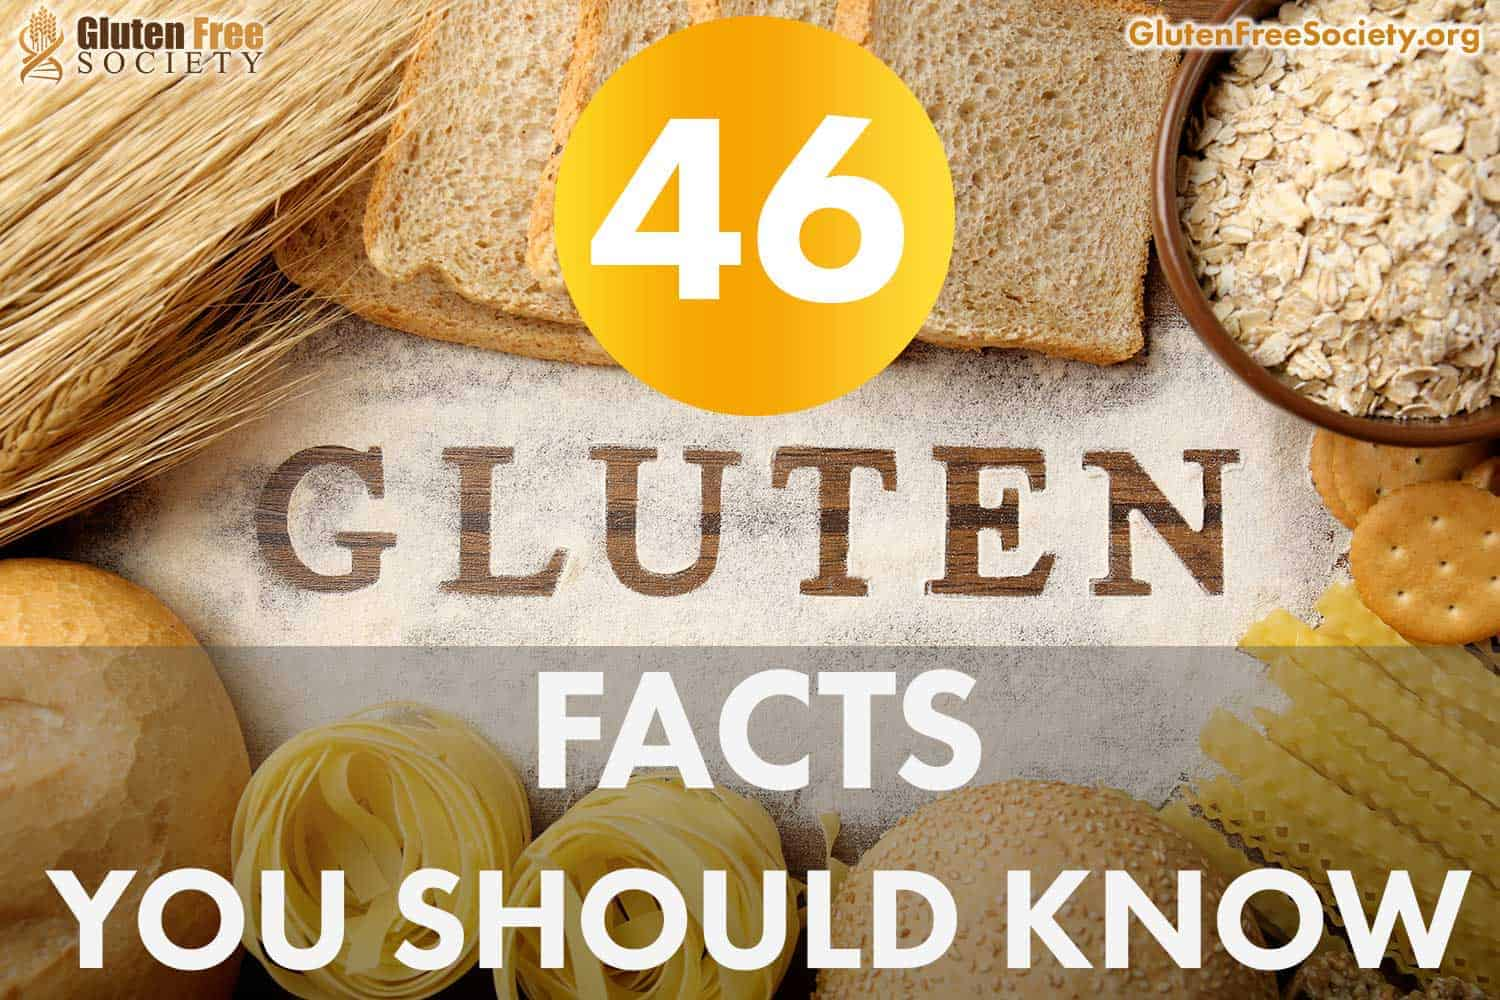 Facts about gluten